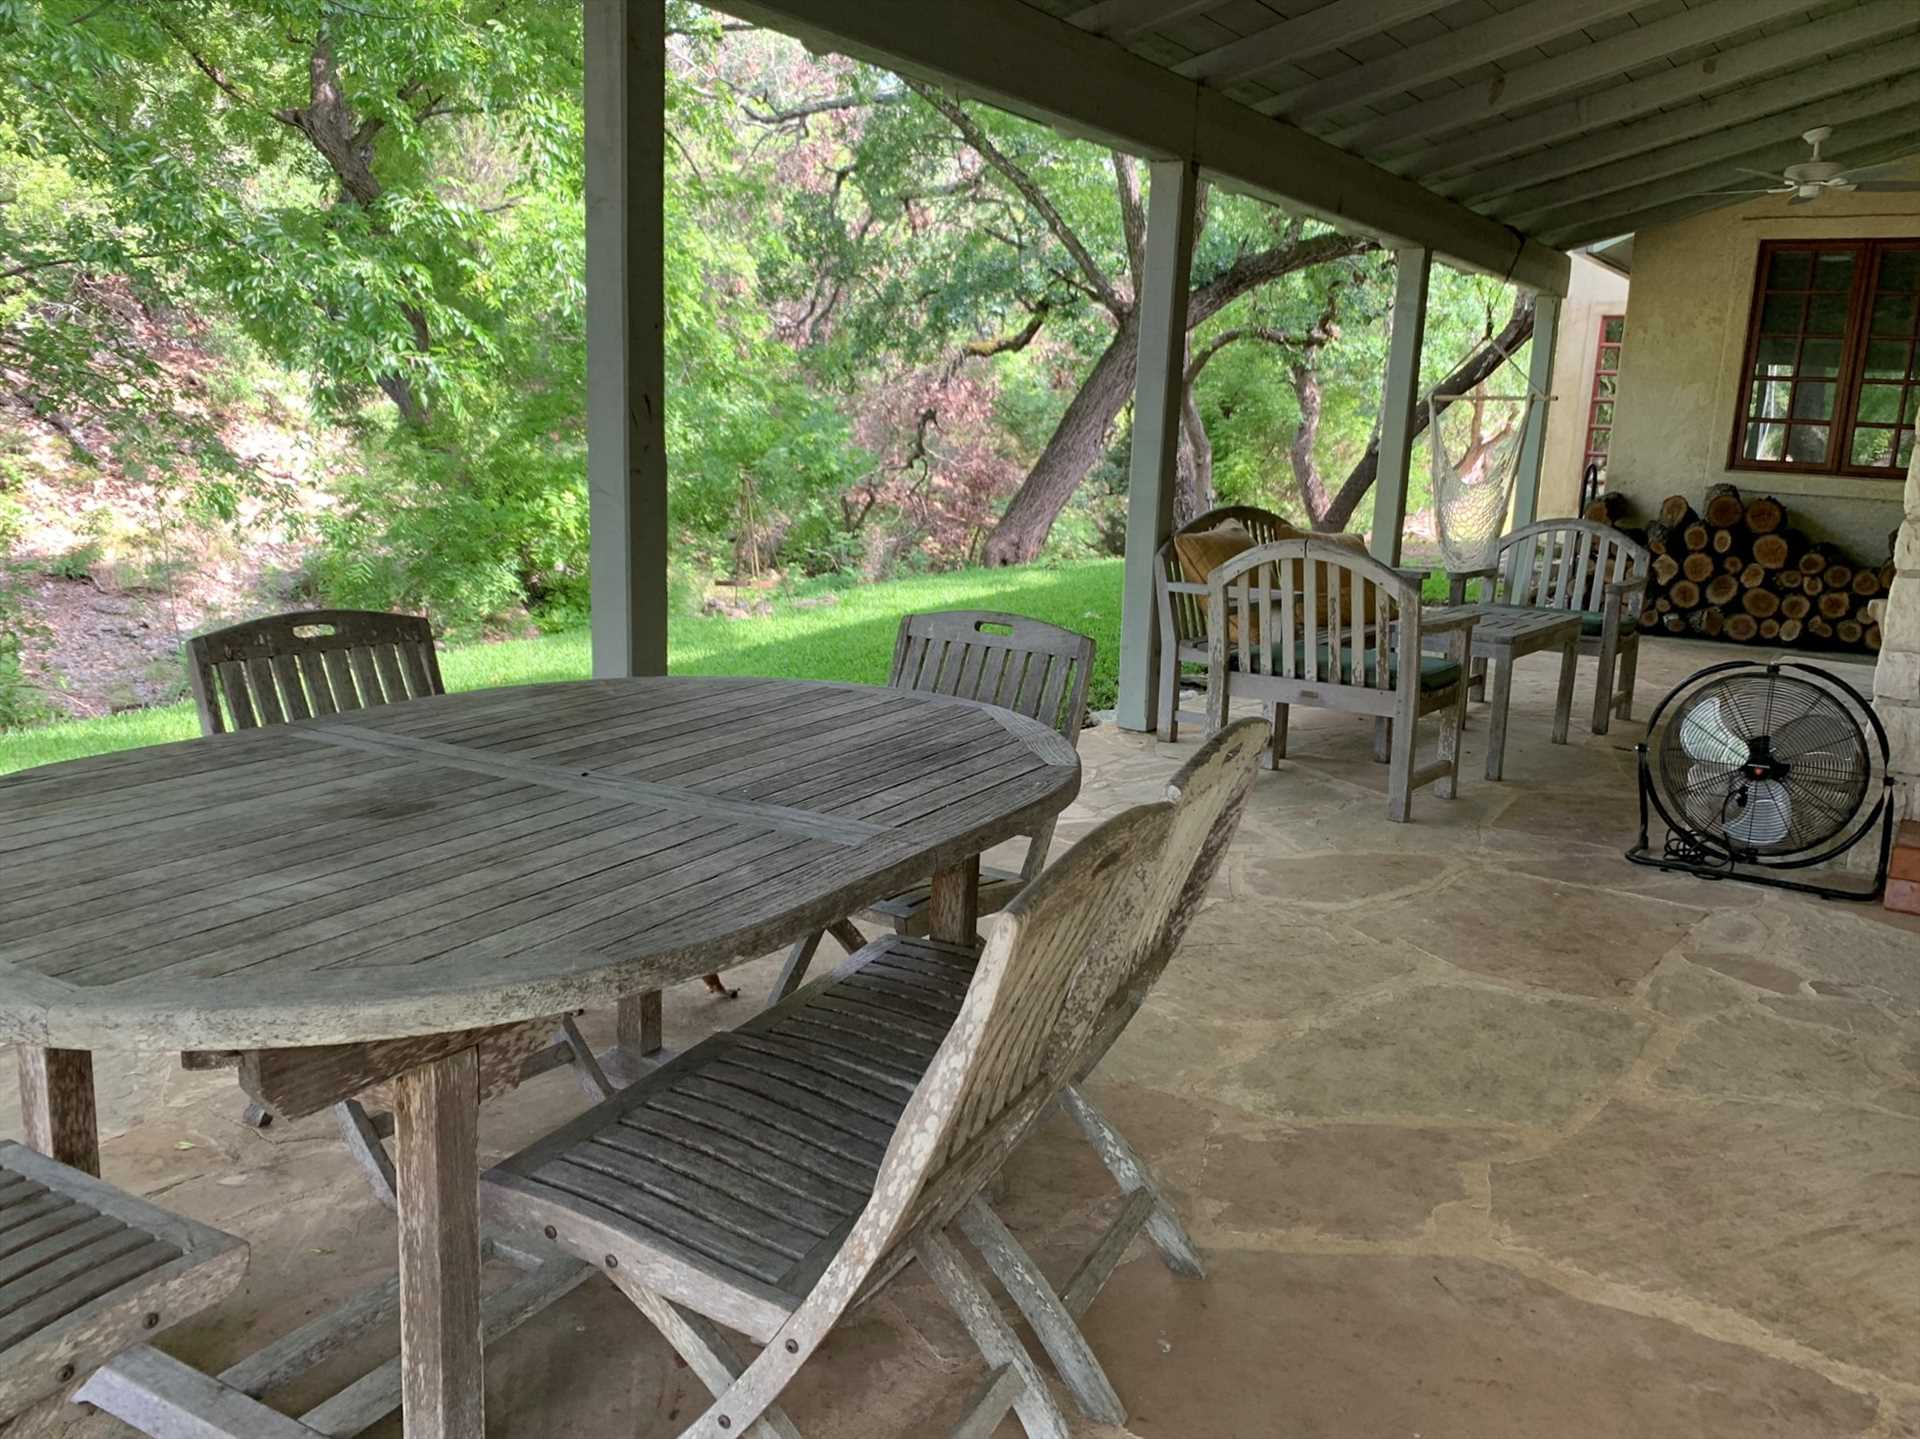 A great big gas grill, outdoor fireplace, and outdoor furniture make the exterior of the Homestead just as fun and comfortable as the inside!